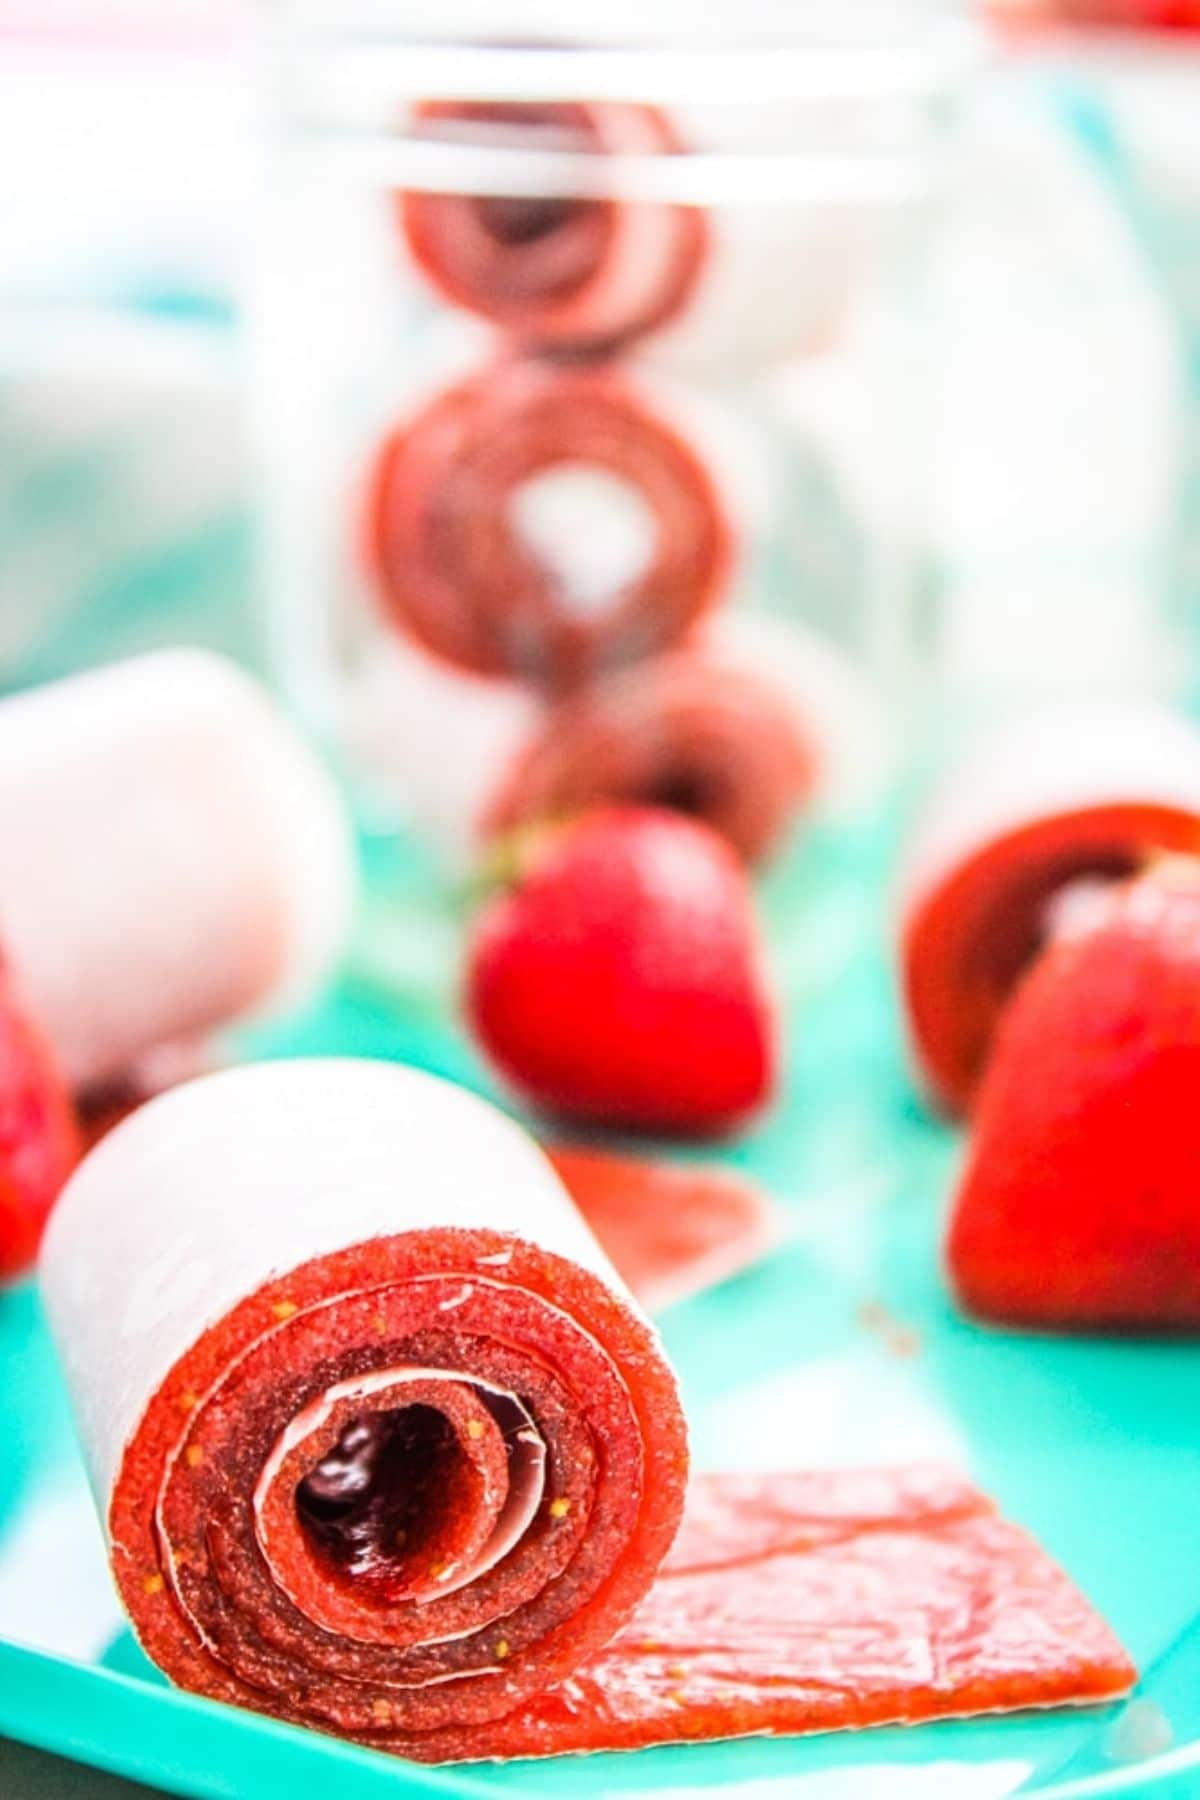 Homemade fruit roll ups on teal table